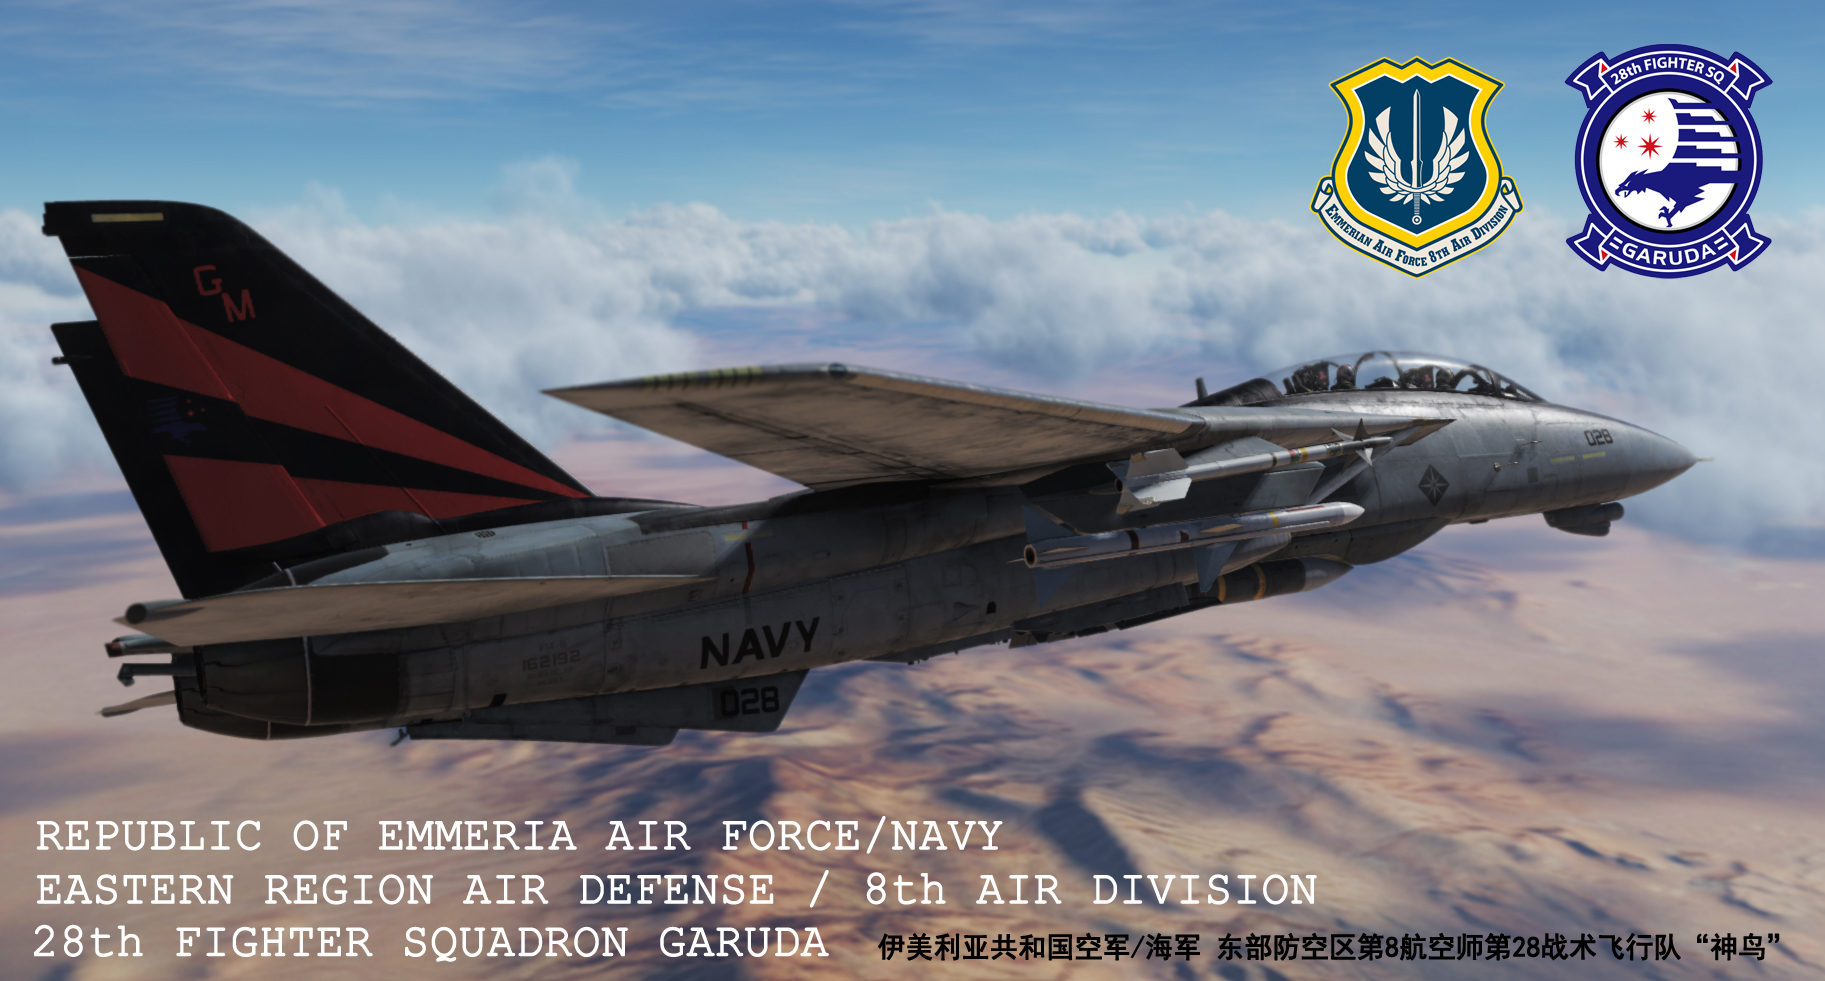 Ace Combat - F-14B Garuda Team Skin from Ace Combat 6:Fires of Liberation